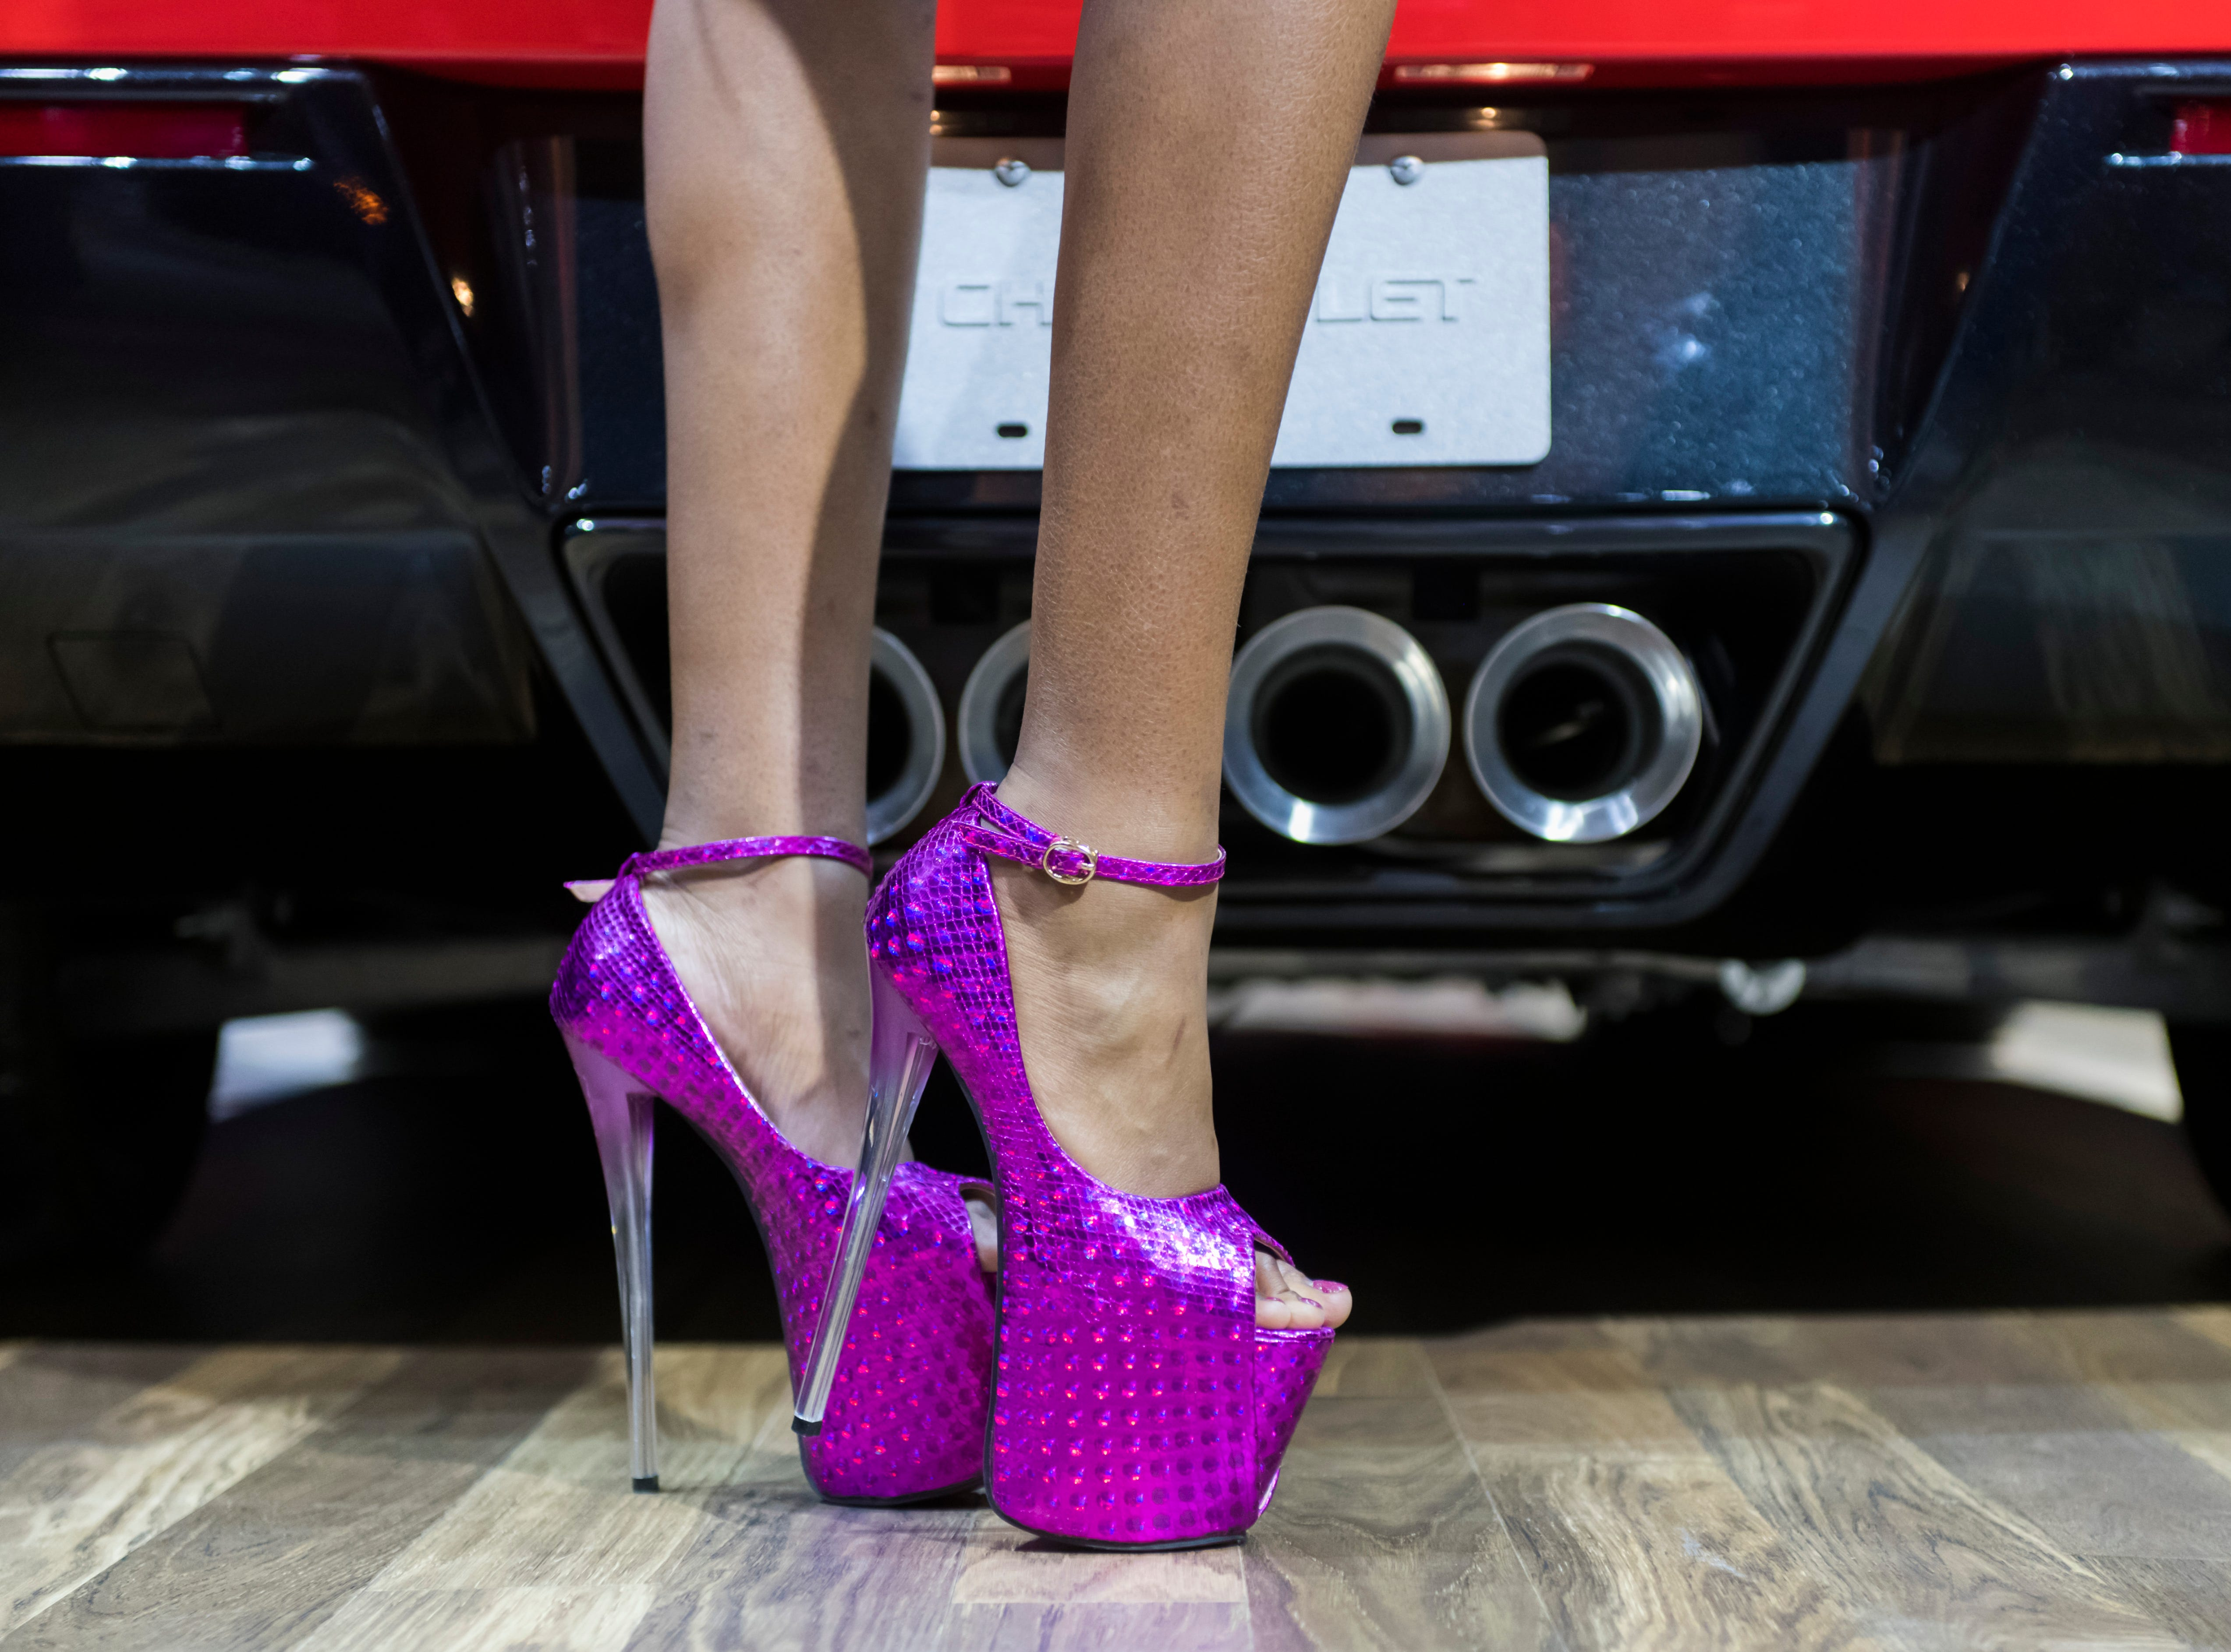 Jae'lyn Ware, of Warren, shows off her high heels behind a Chevrolet Corvette during the charity preview of the North American International Auto Show at Cobo Center in Detroit, January 19, 2018.